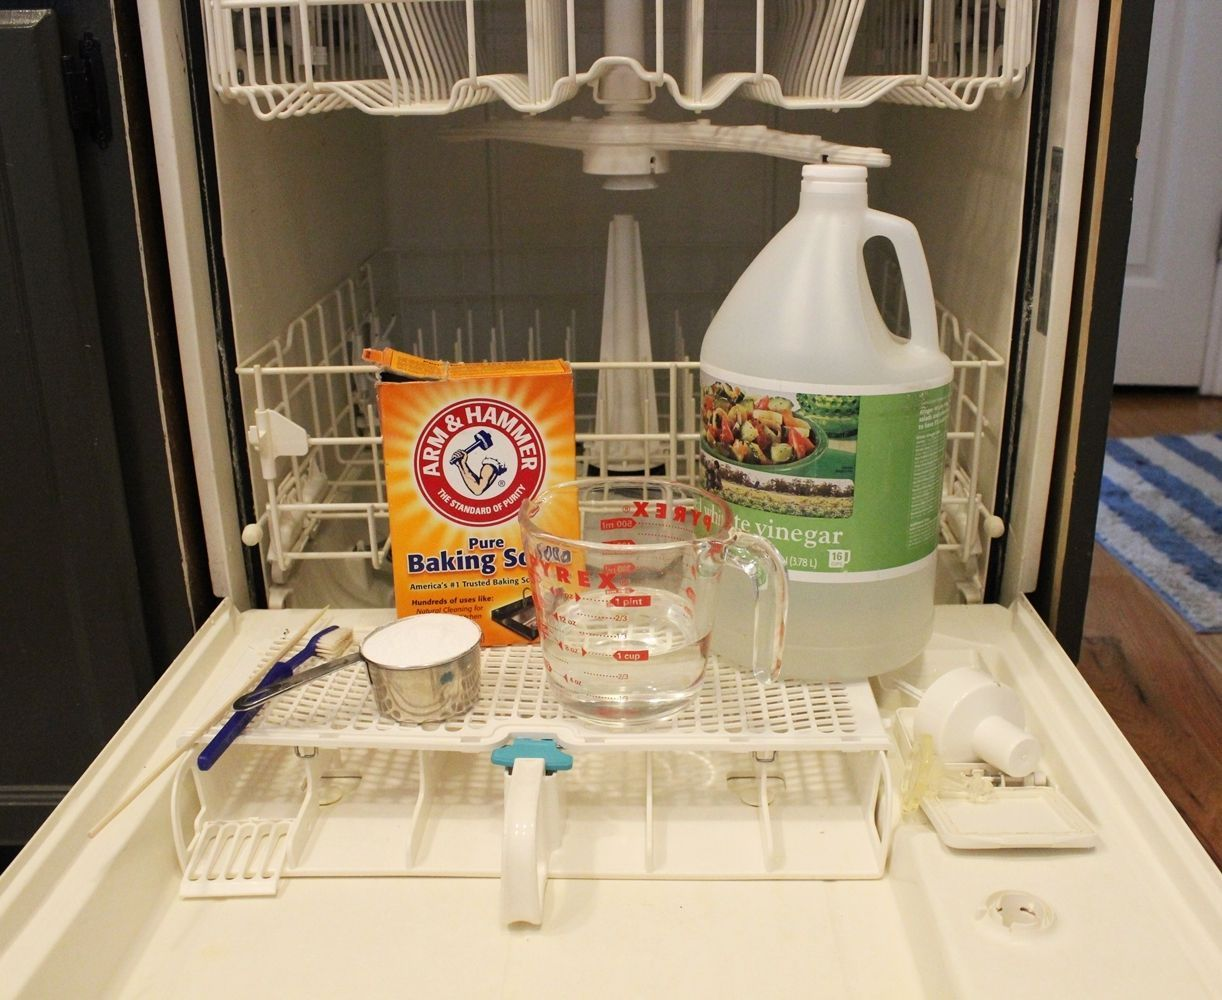 How To Clean A Dishwasher Naturally Clean Dishwasher Dishwasher Cleaner House Cleaning Tips